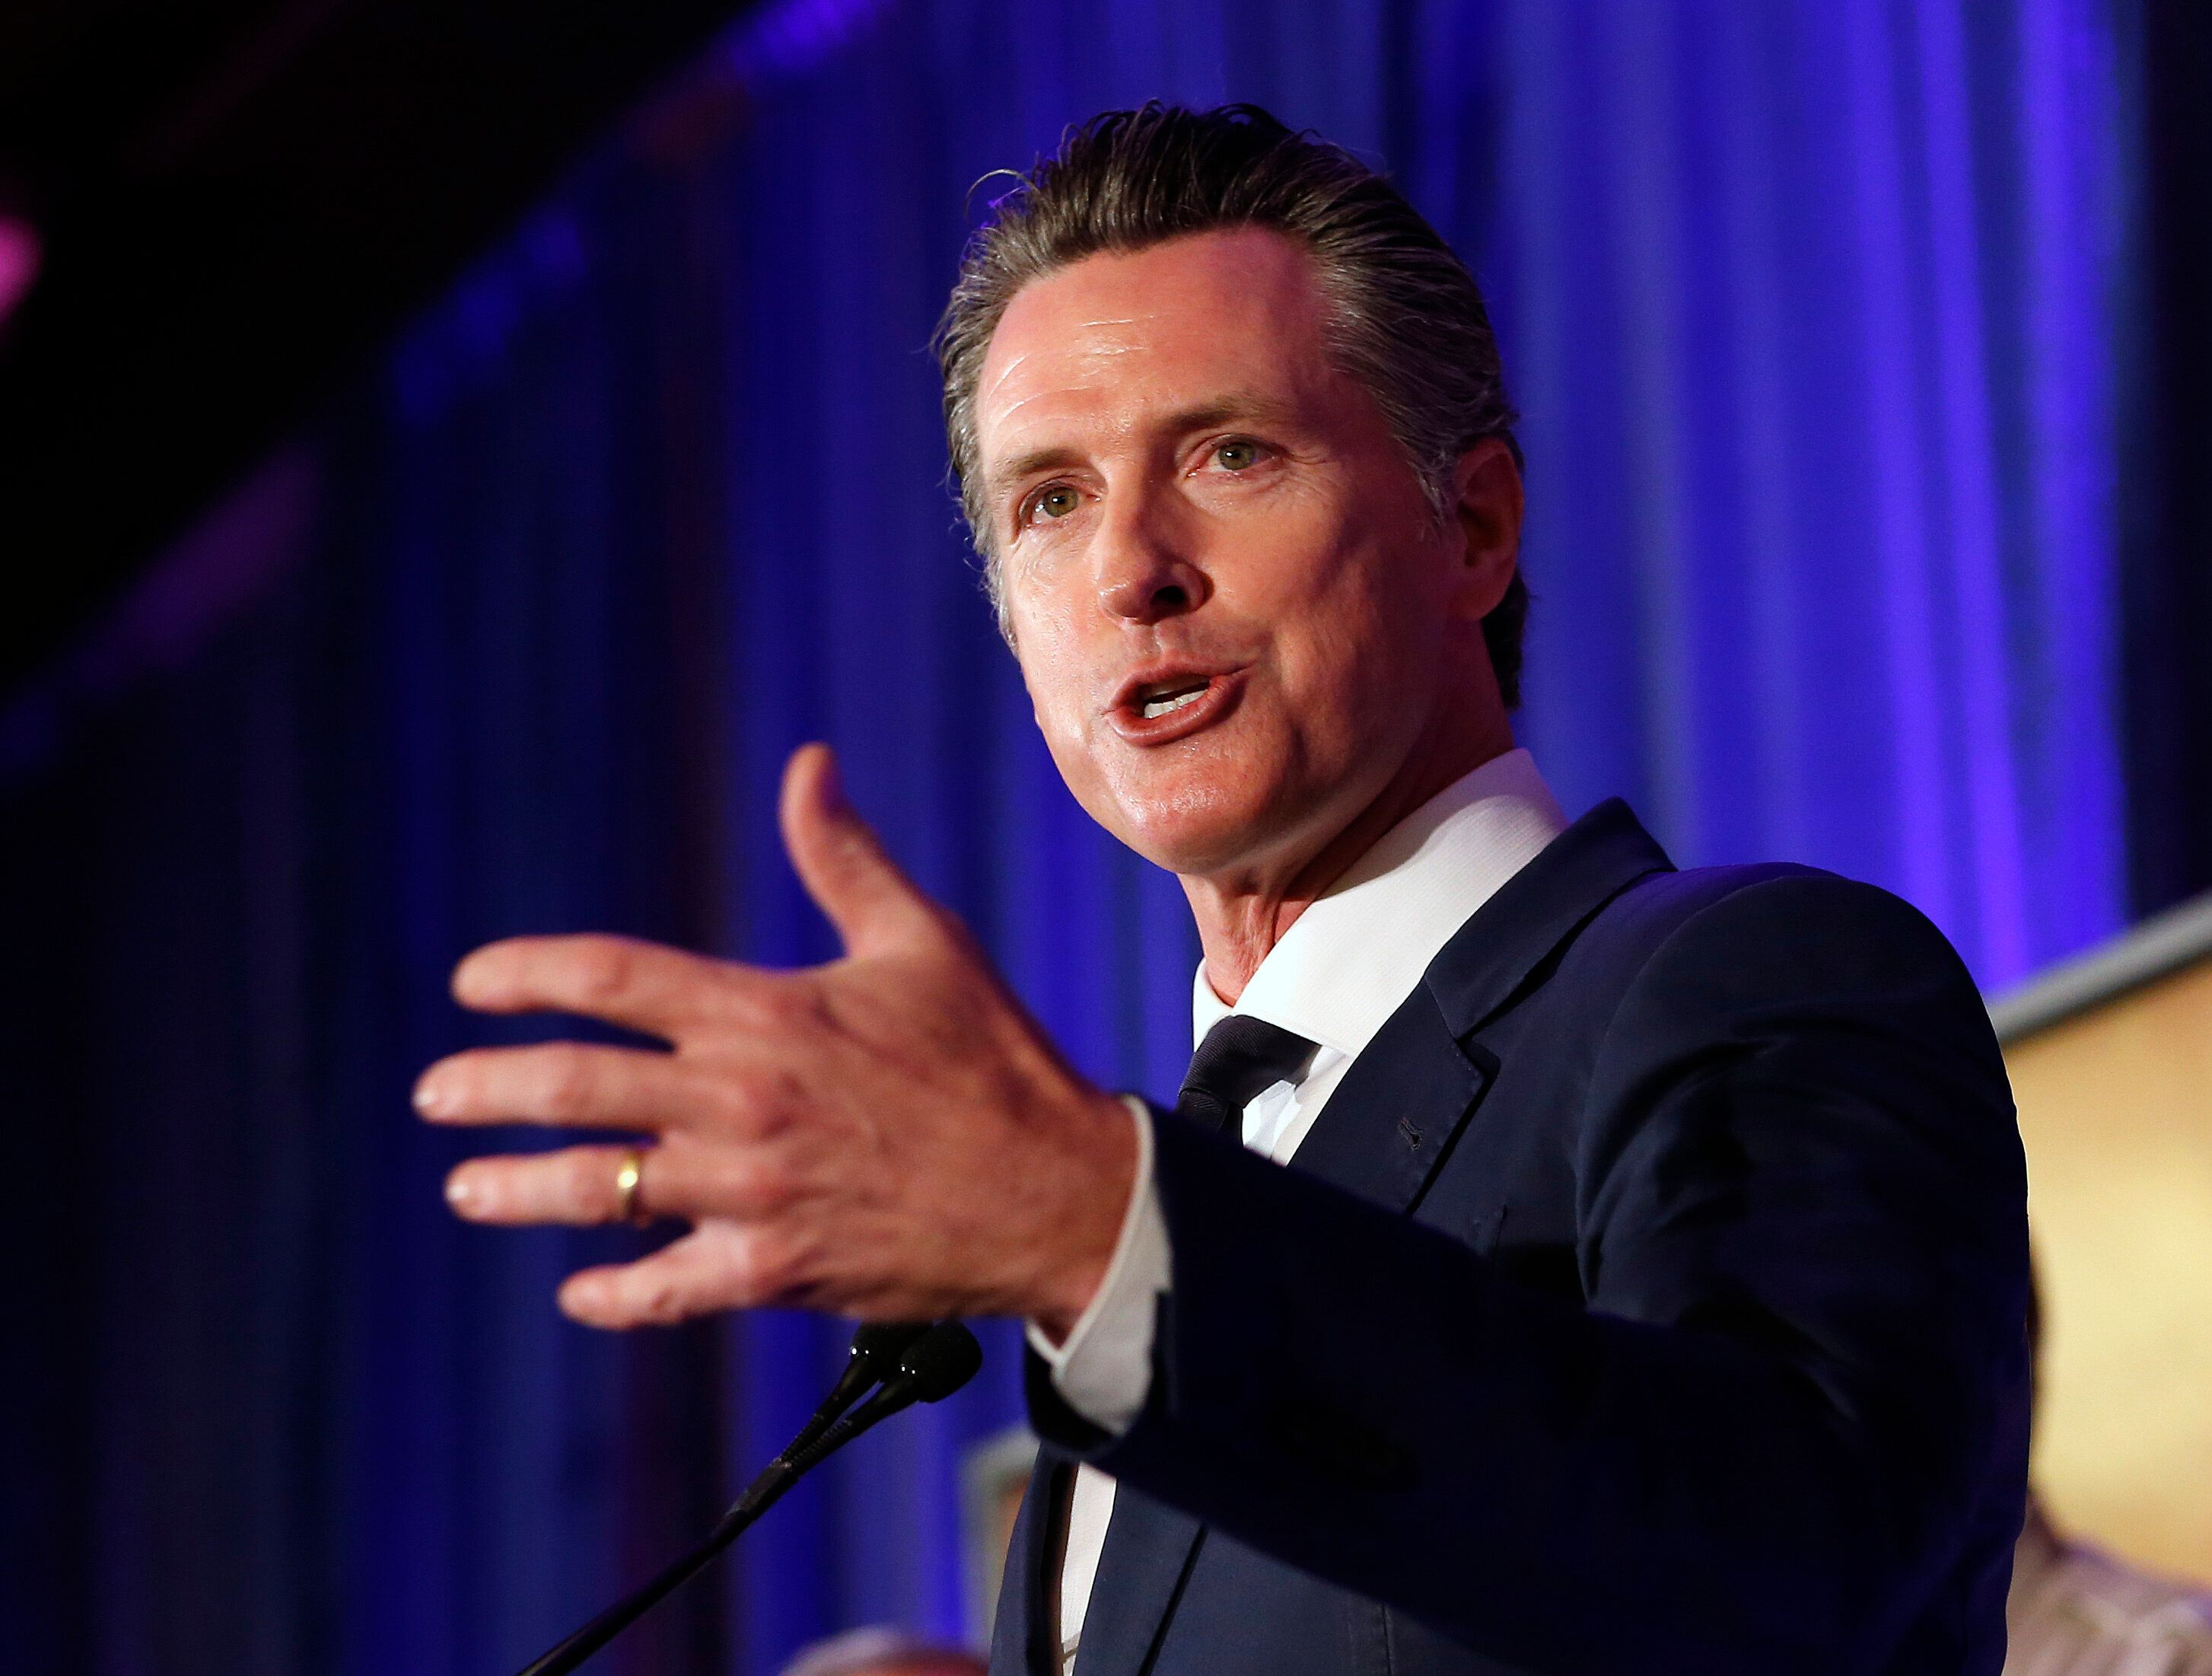 California Gov. Gavin Newsom said he looks forwarding to working with Canada to pursue clean air goals.